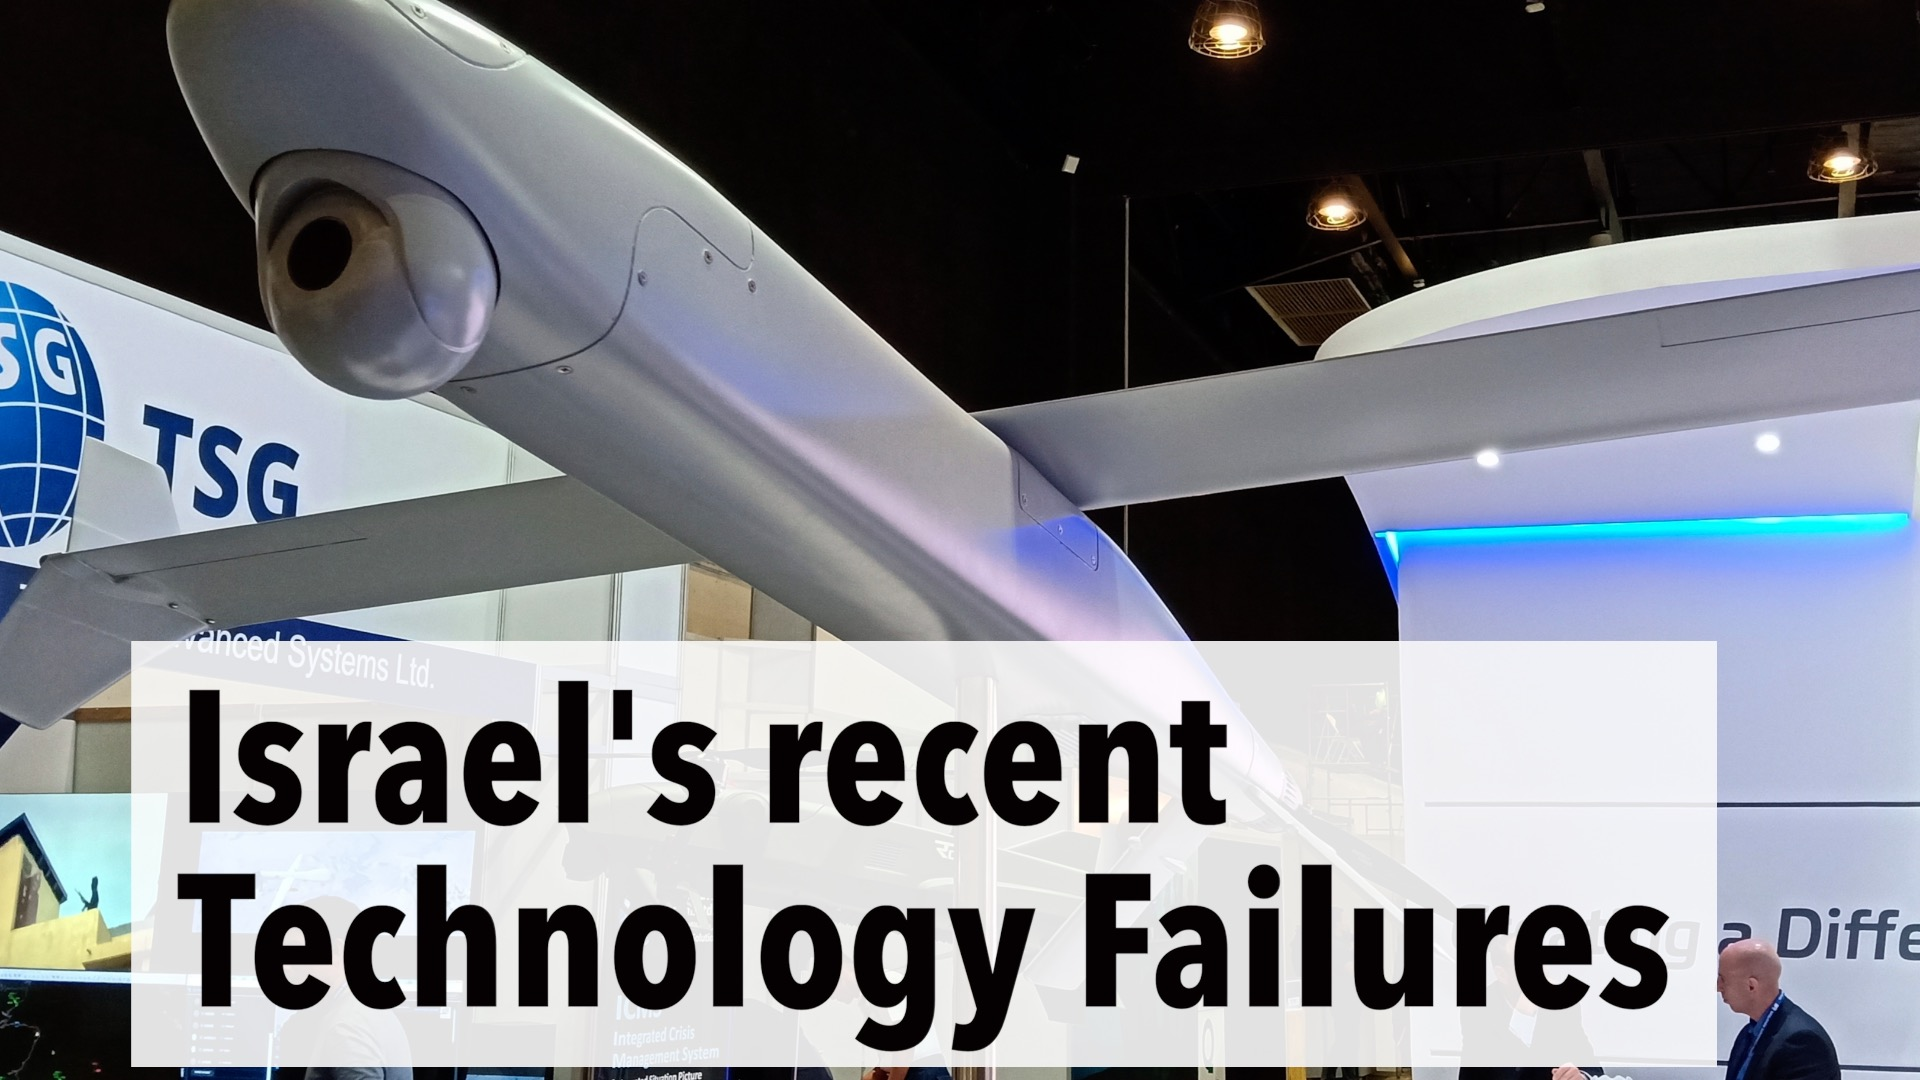 Is Israel a leader in Security Technology? Examining recent failures with Dr. Shir Hever